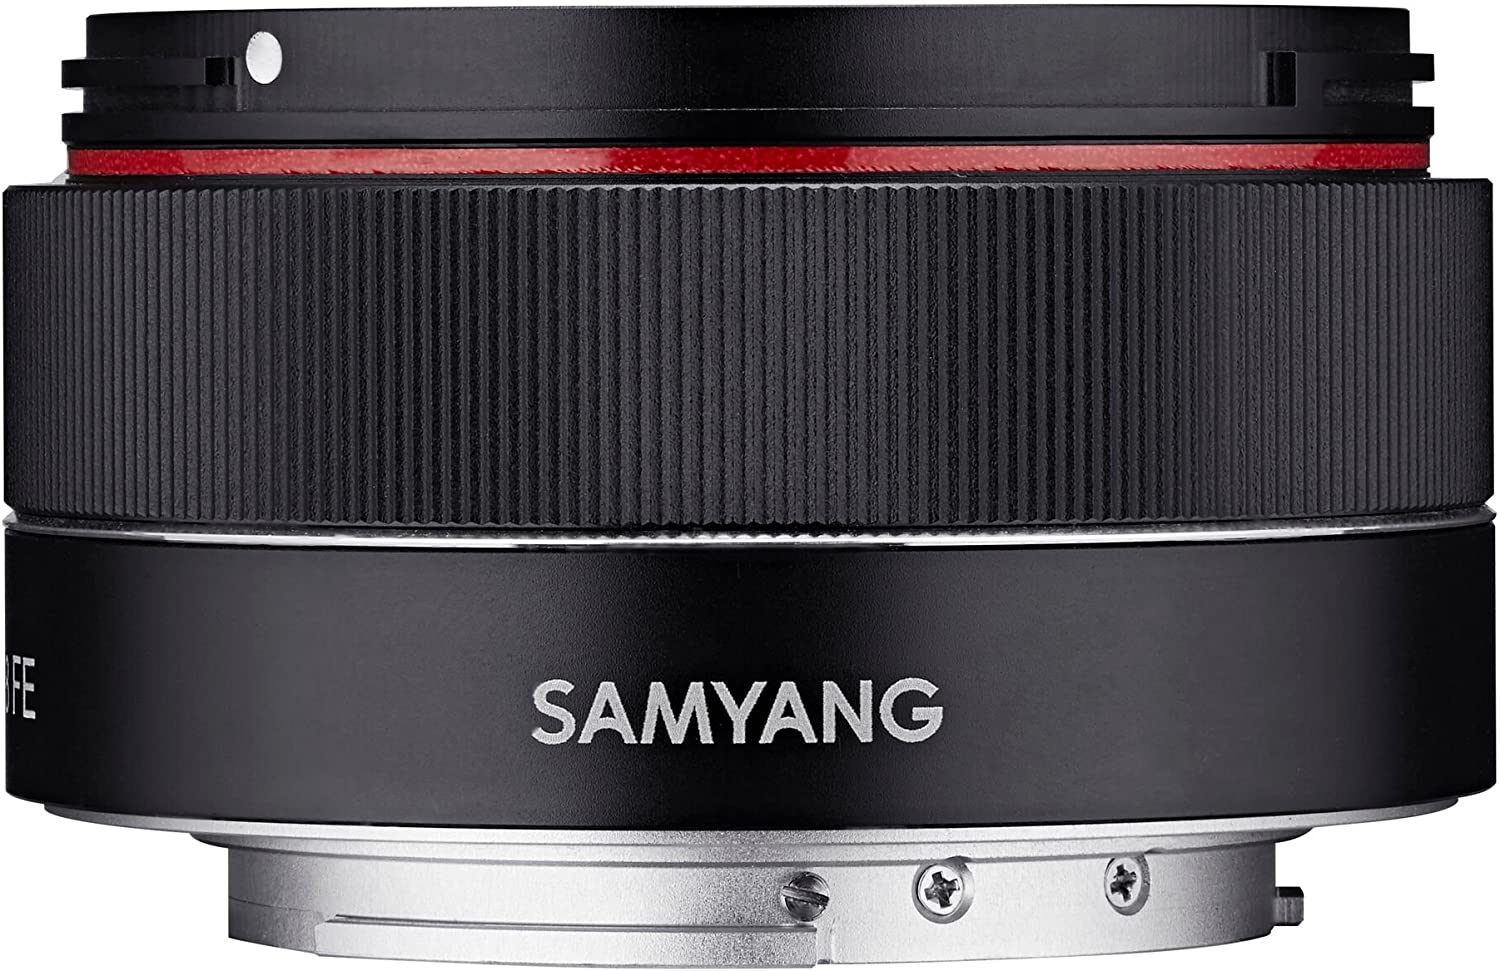 Samyang SYIO35AF-E 35mm f/2.8 Ultra Compact Wide Angle Lens for Sony E Mount Full Frame, Black